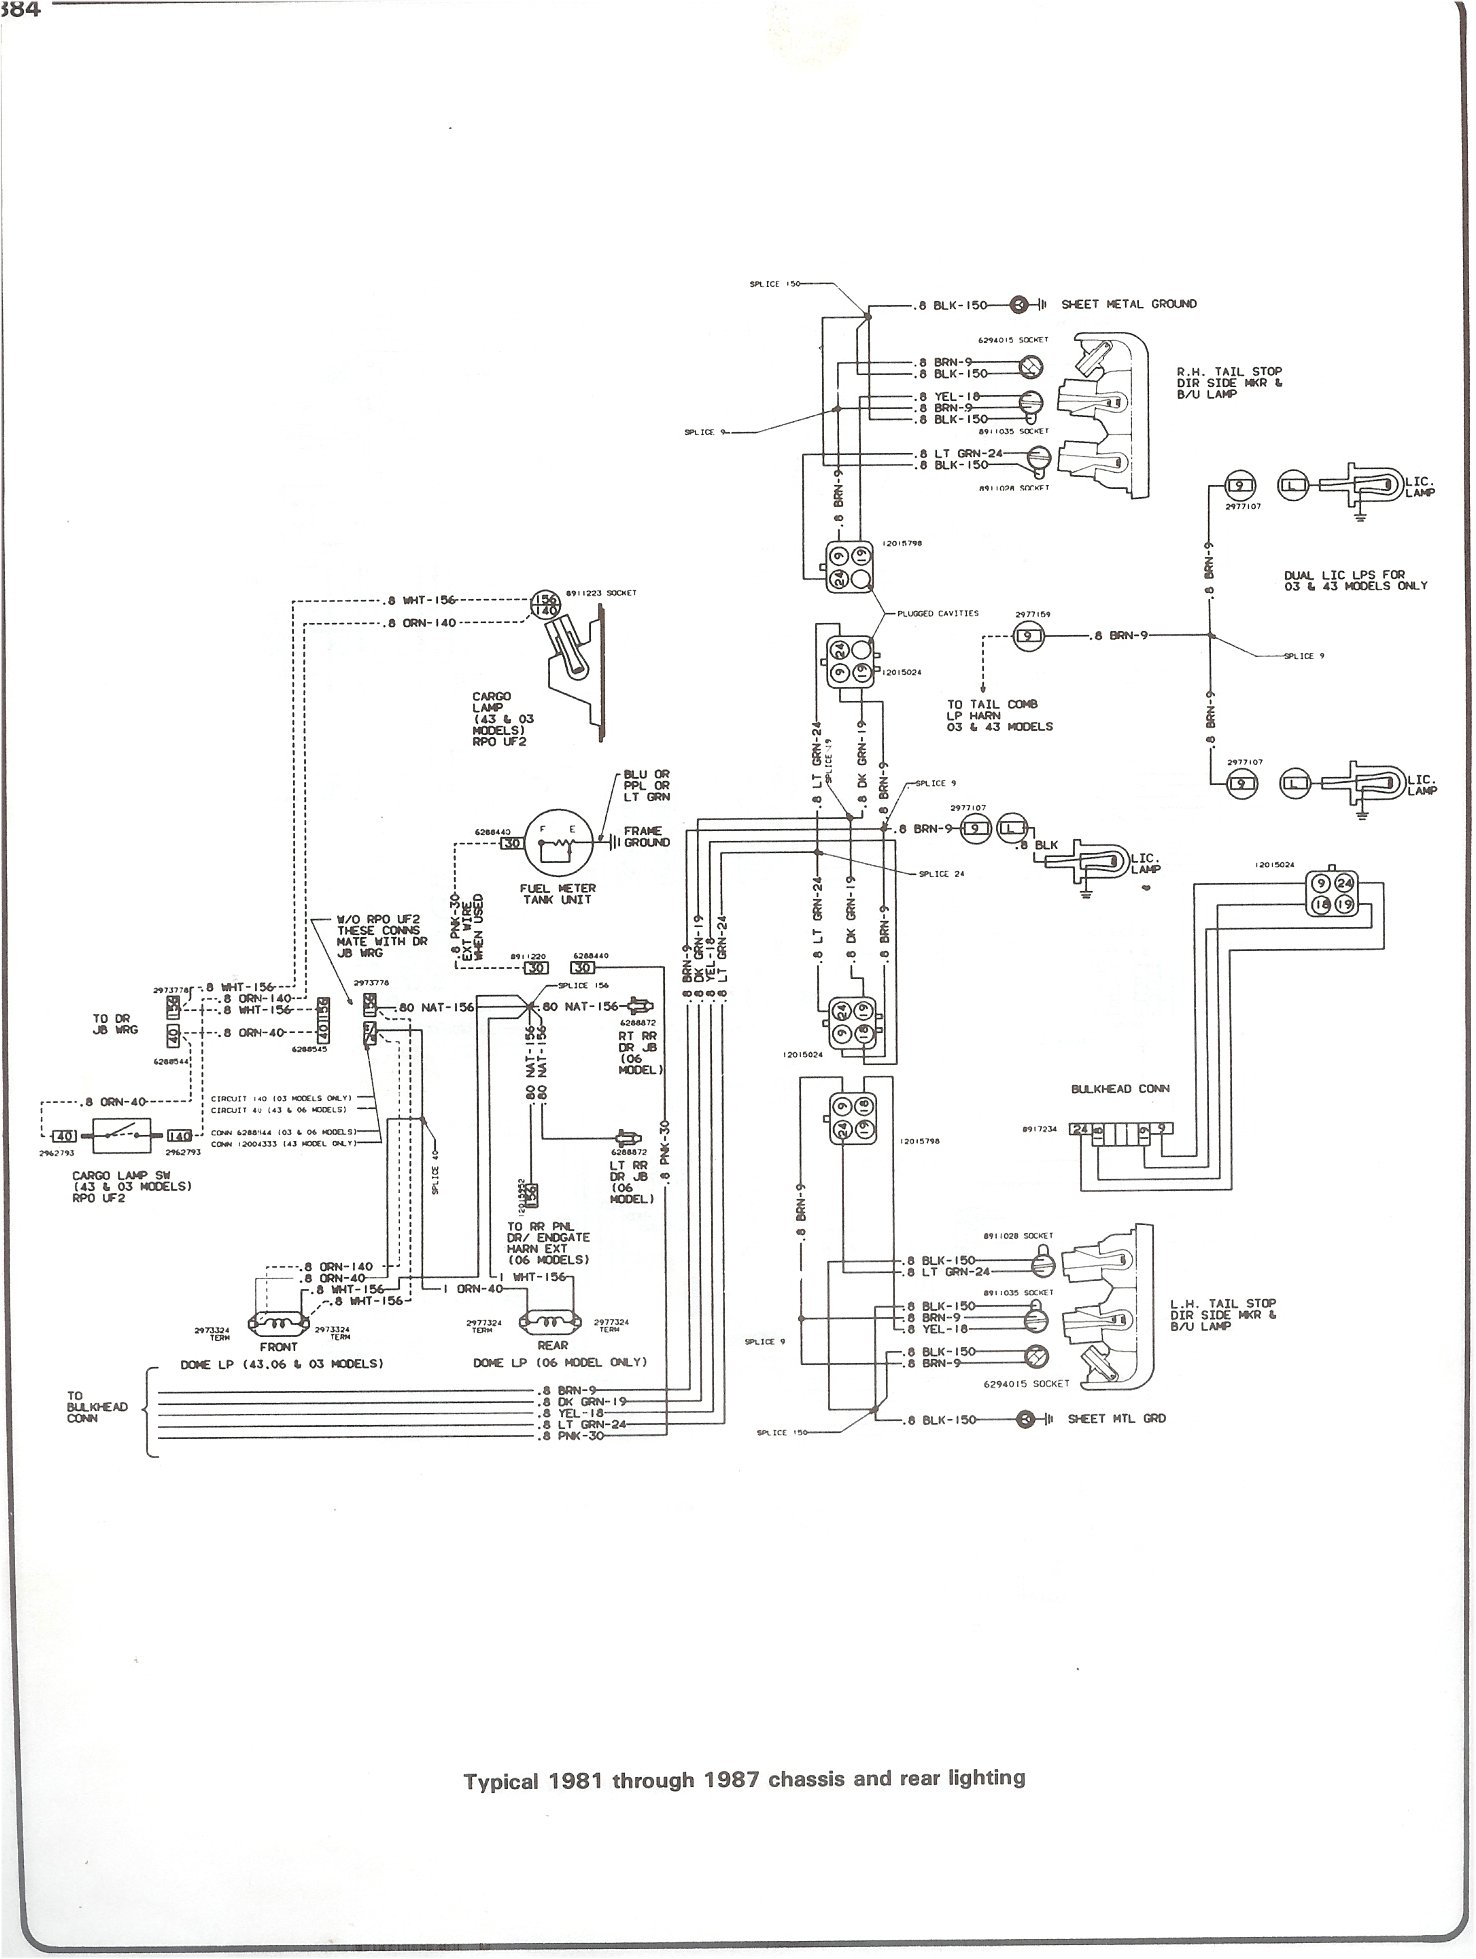 81 87_chass_rr_light wiring diagram 1992 chevy c truck readingrat net 1992 chevy truck wiring diagram at webbmarketing.co